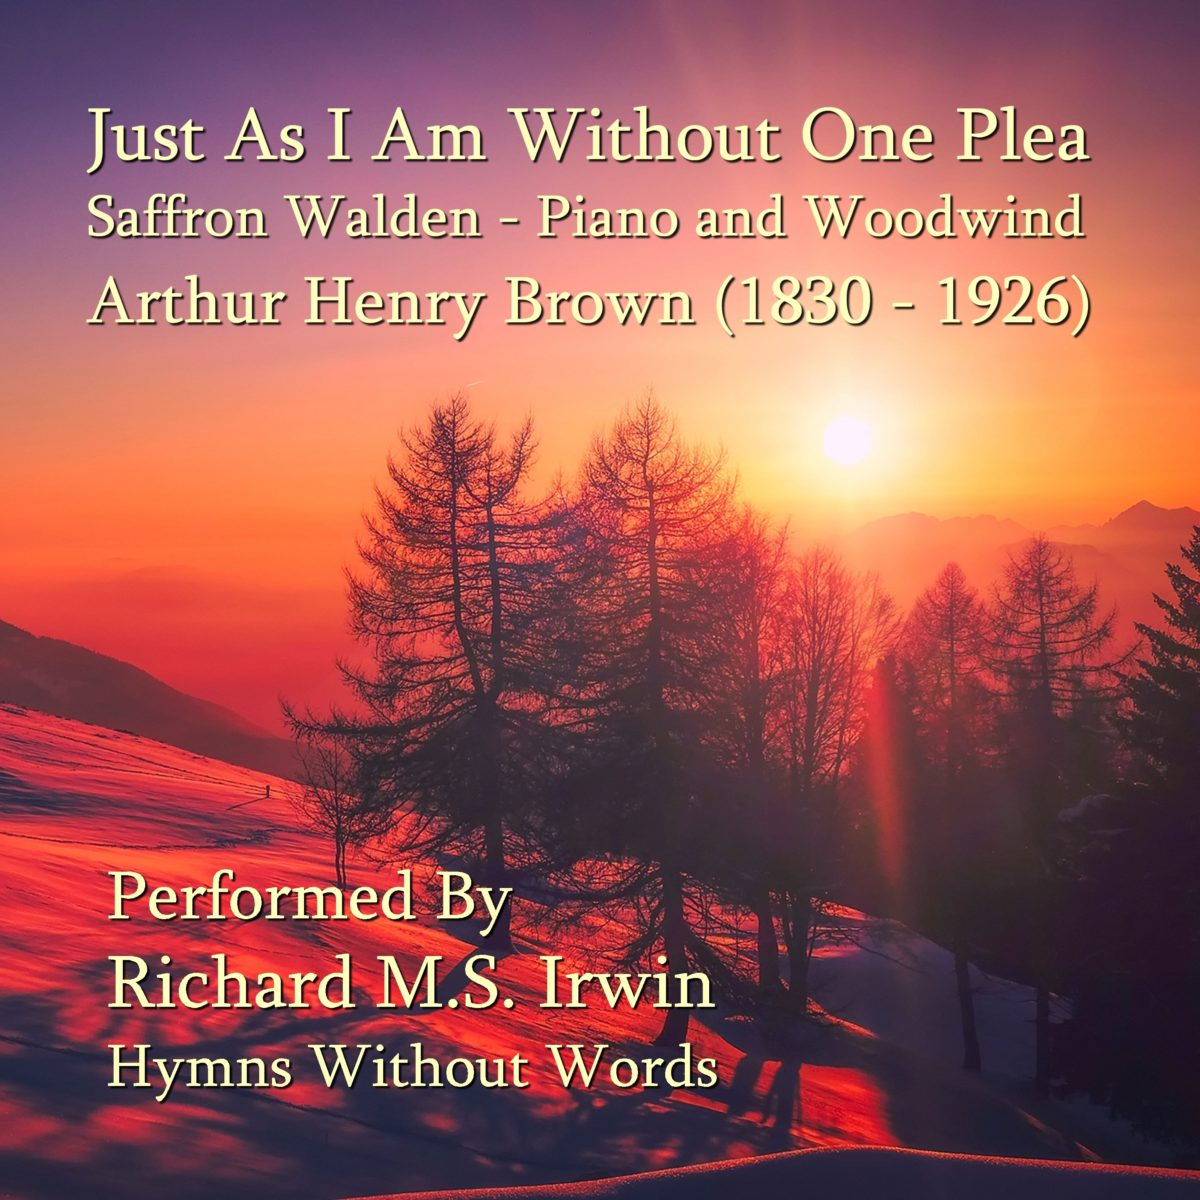 Just As I Am Without One Plea (Saffron Walden, Piano and Woodwind, 6 Verses)